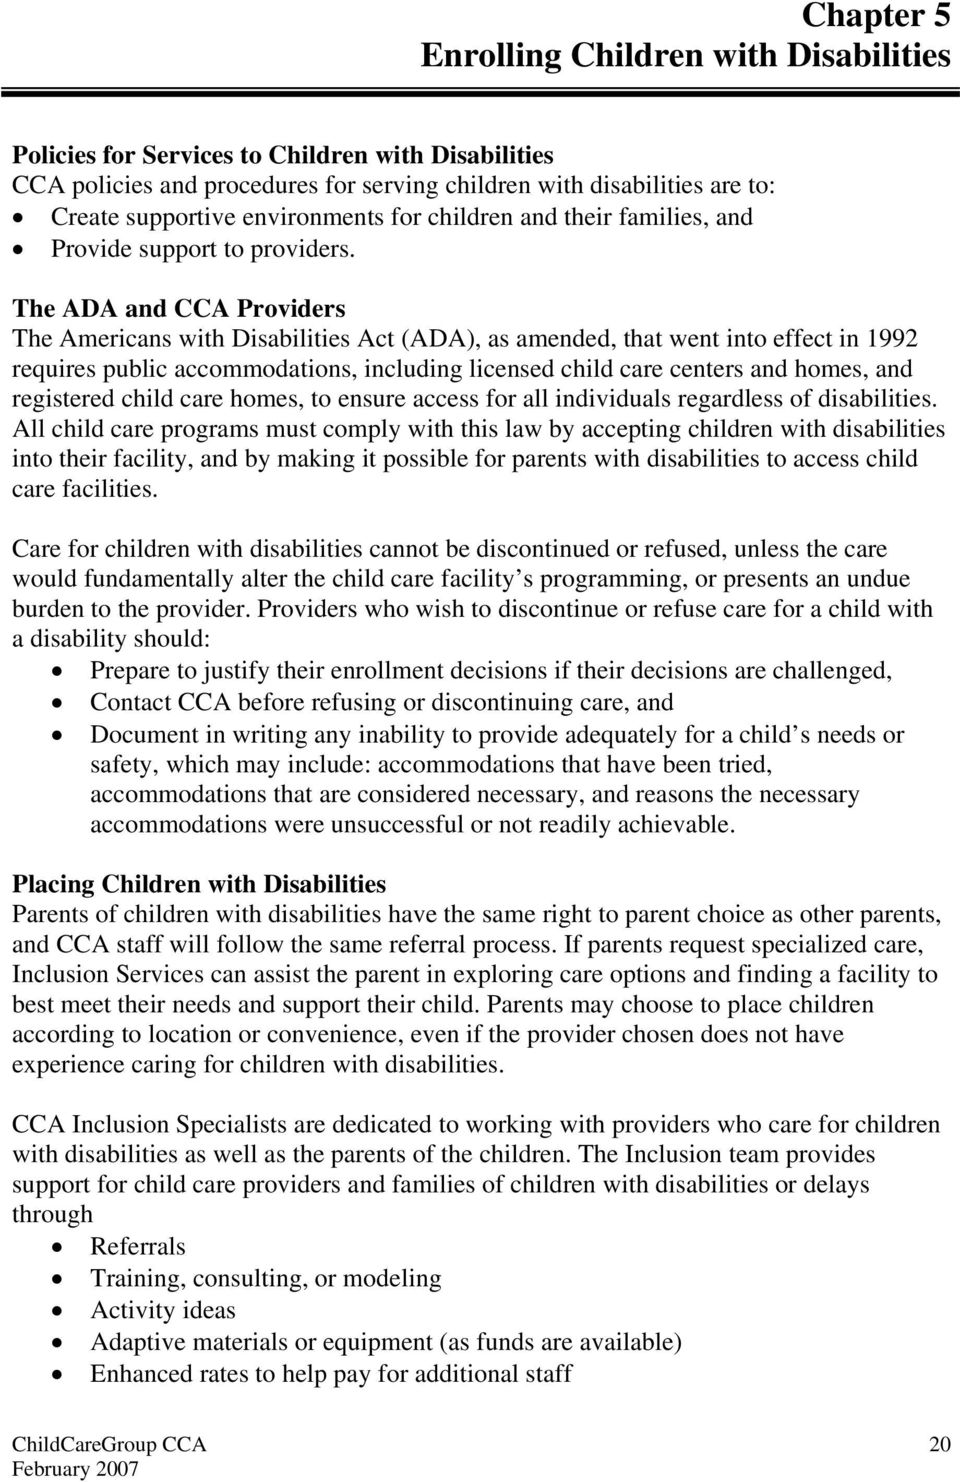 The ADA and CCA Providers The Americans with Disabilities Act (ADA), as amended, that went into effect in 1992 requires public accommodations, including licensed child care centers and homes, and